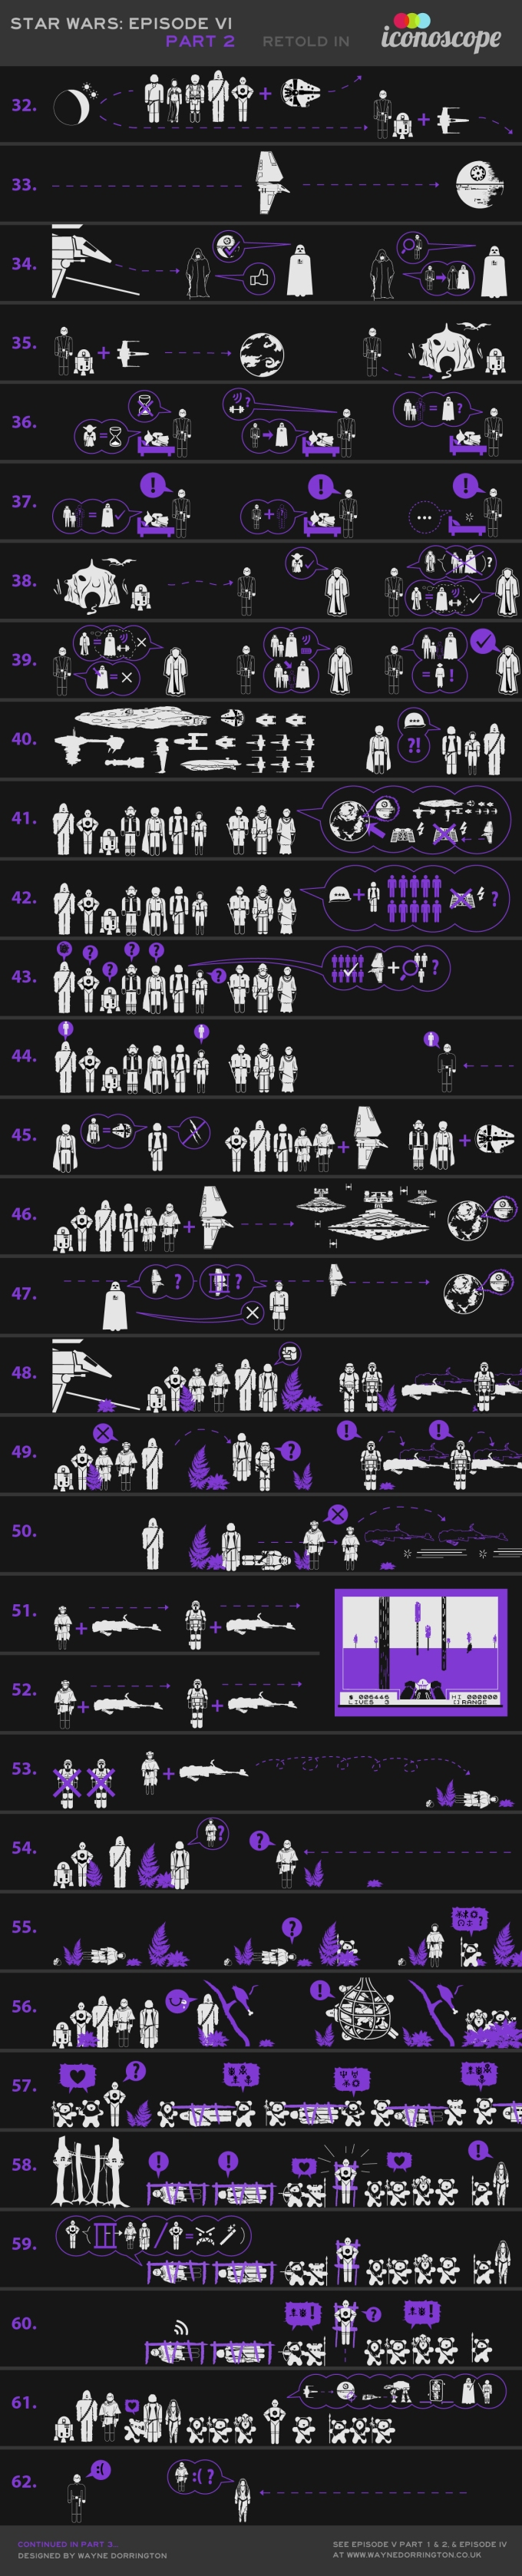 star-wars-return-of-the-jedi-iconoscope-part-2